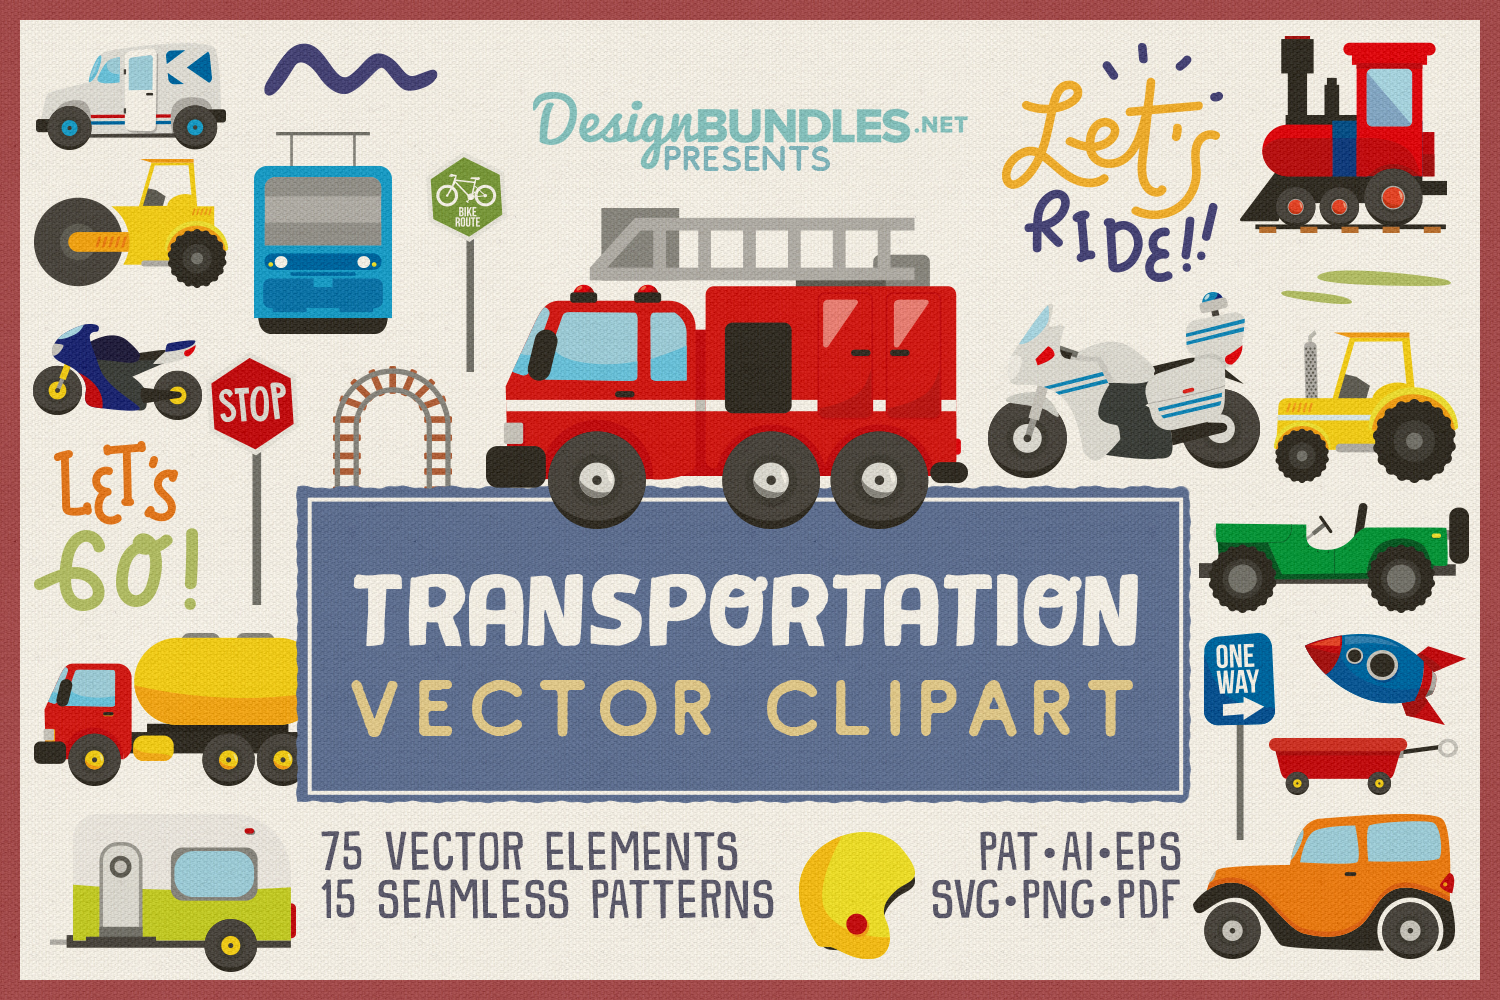 75 Transportation Vector Clipart & Seamless Patterns example image 1